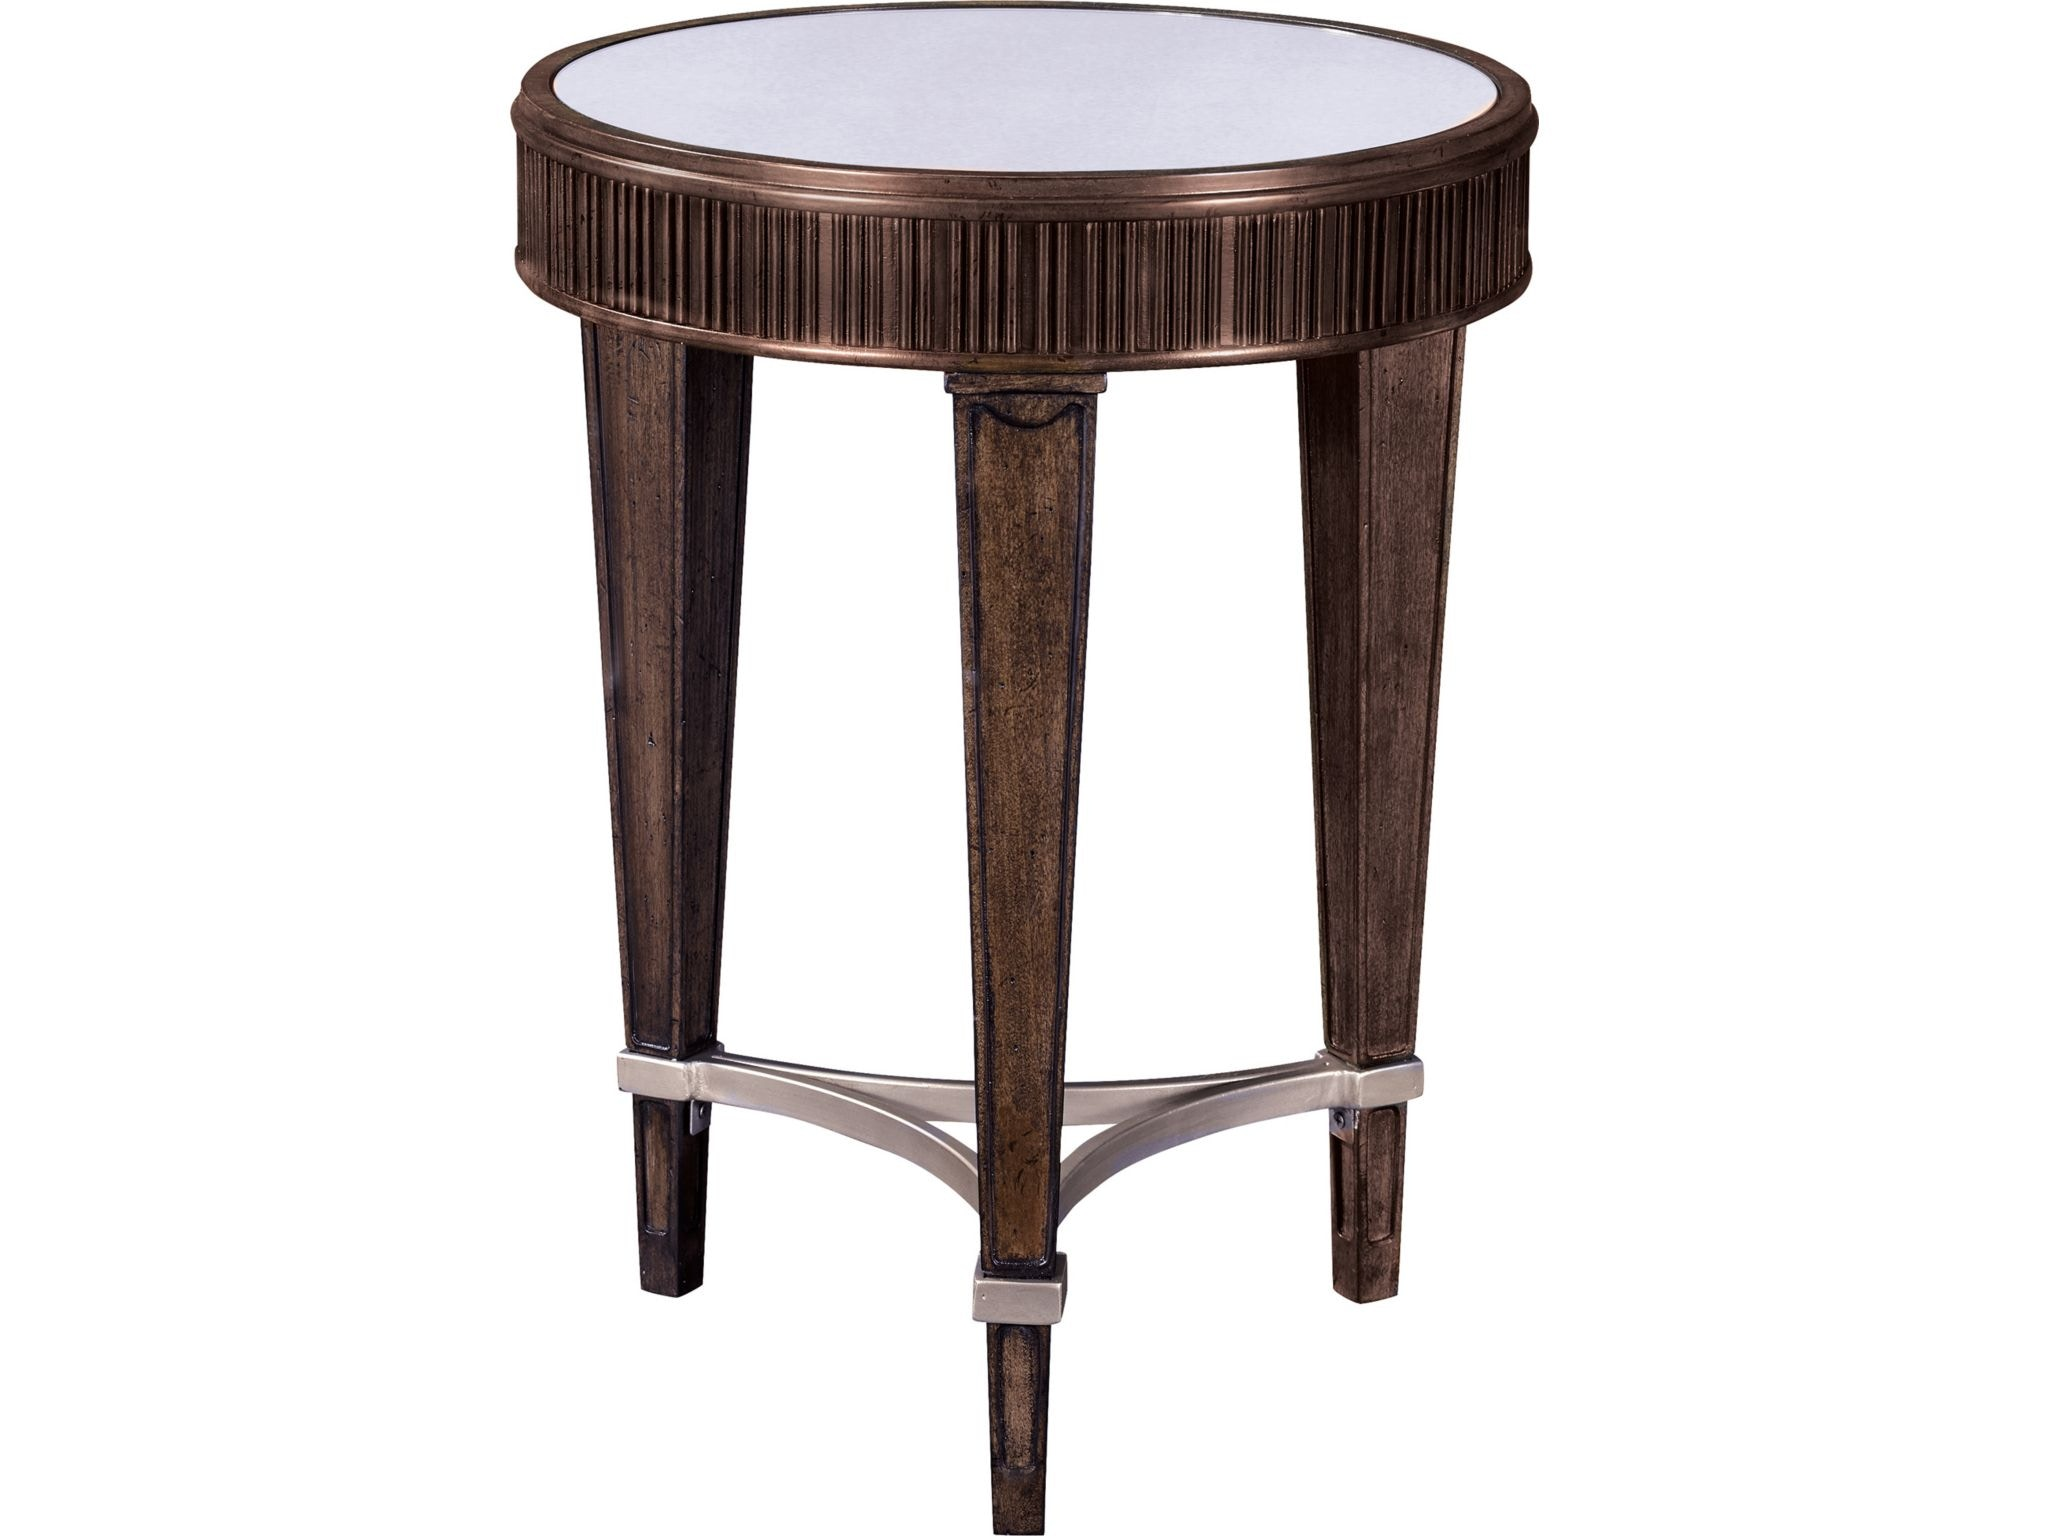 Broyhill Living Room Cashmera Round Chairside Table 4860 004   B.F. Myers  Furniture   Goodlettsville And Nashville Area, TN